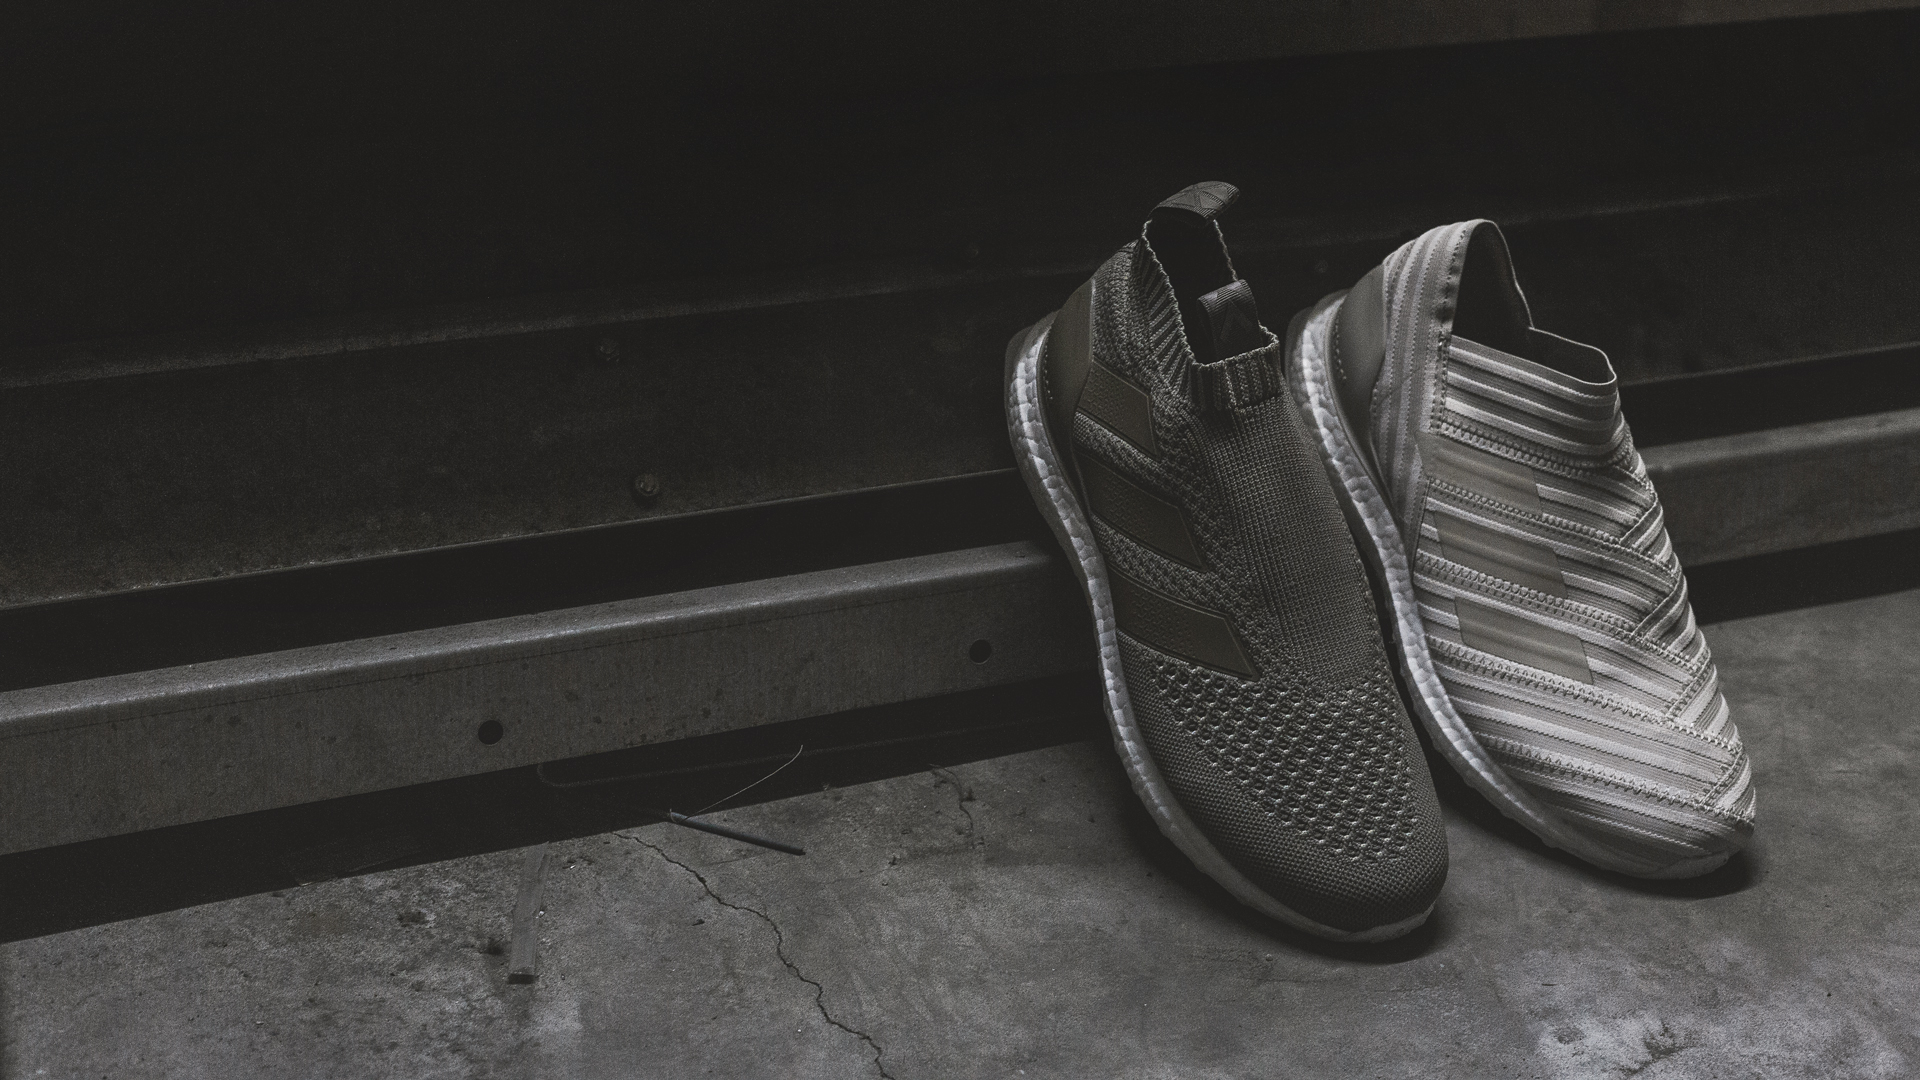 43a9d771d07dd New Nemeziz 17+ Ultra Boost colourway and the return of the ACE 16+  PureControl Ultra Boost